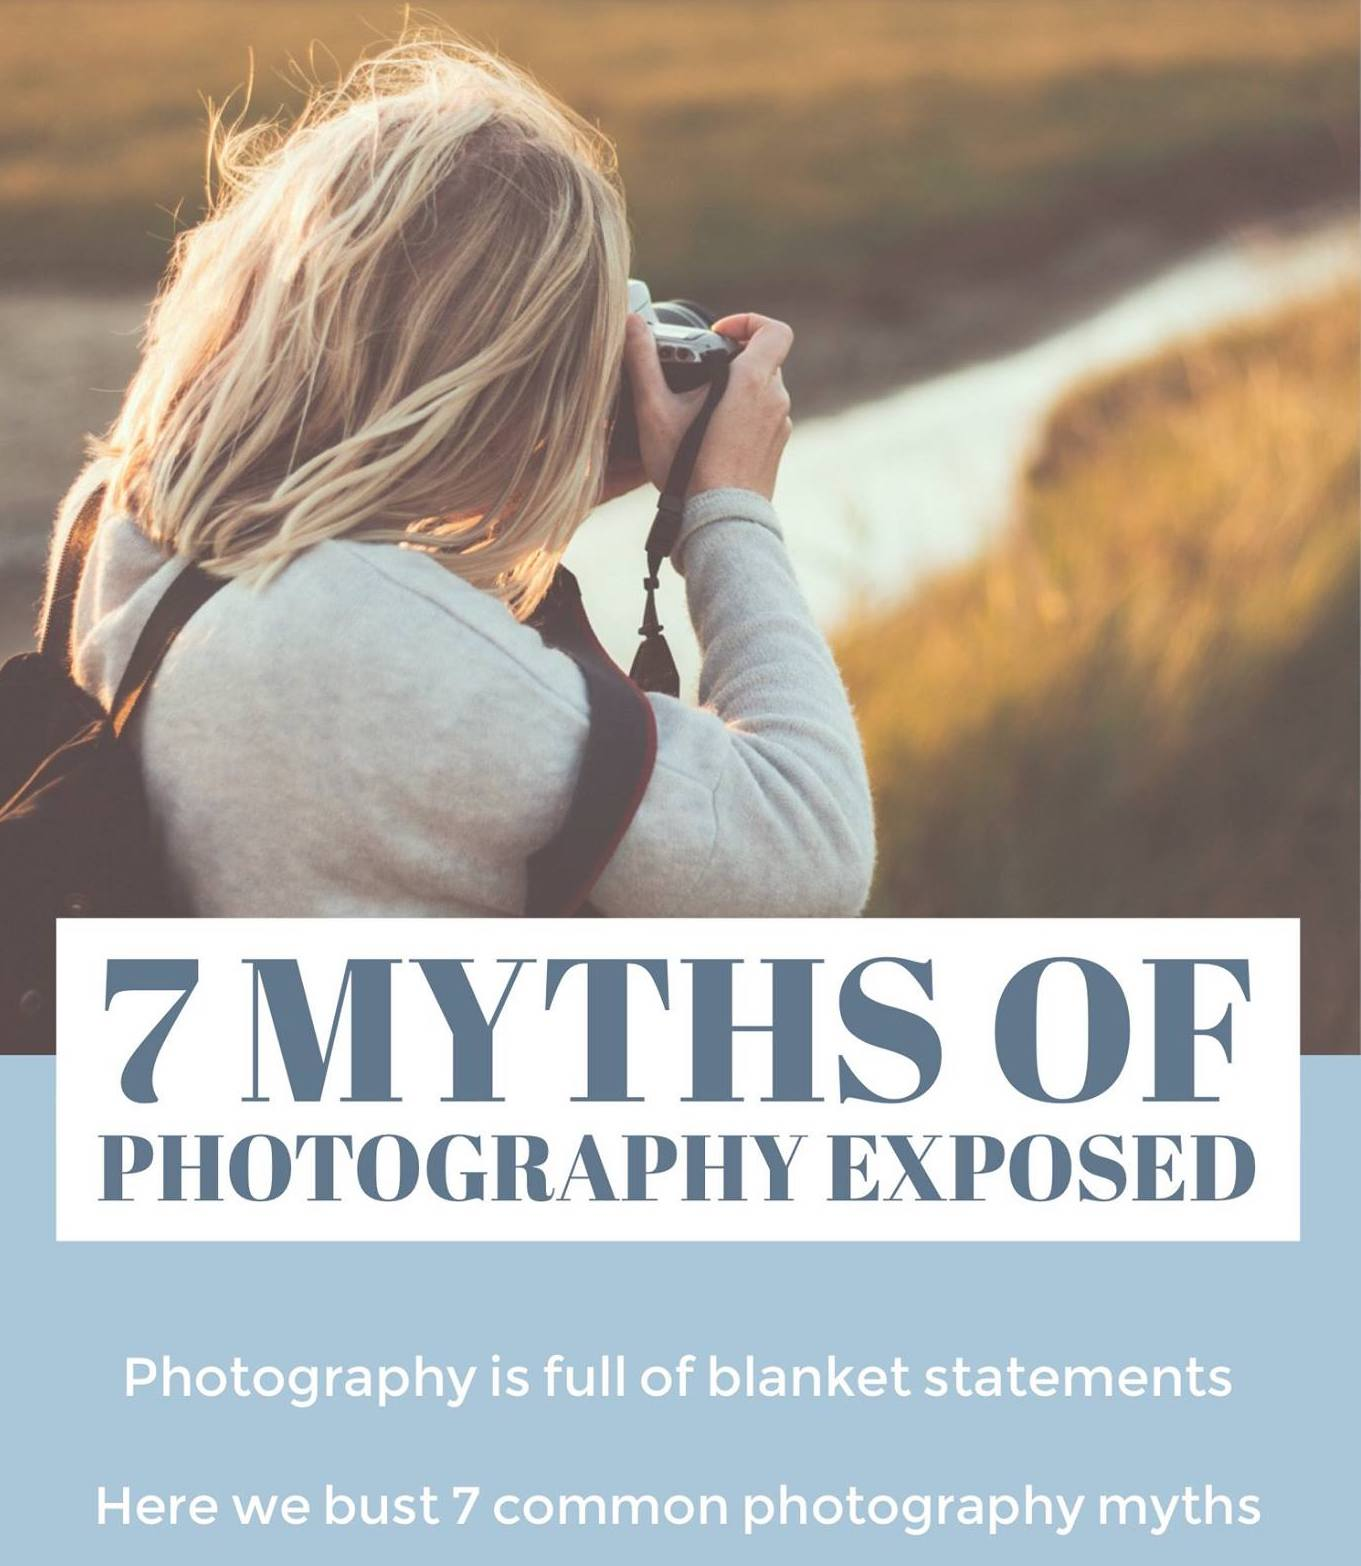 Photography myths